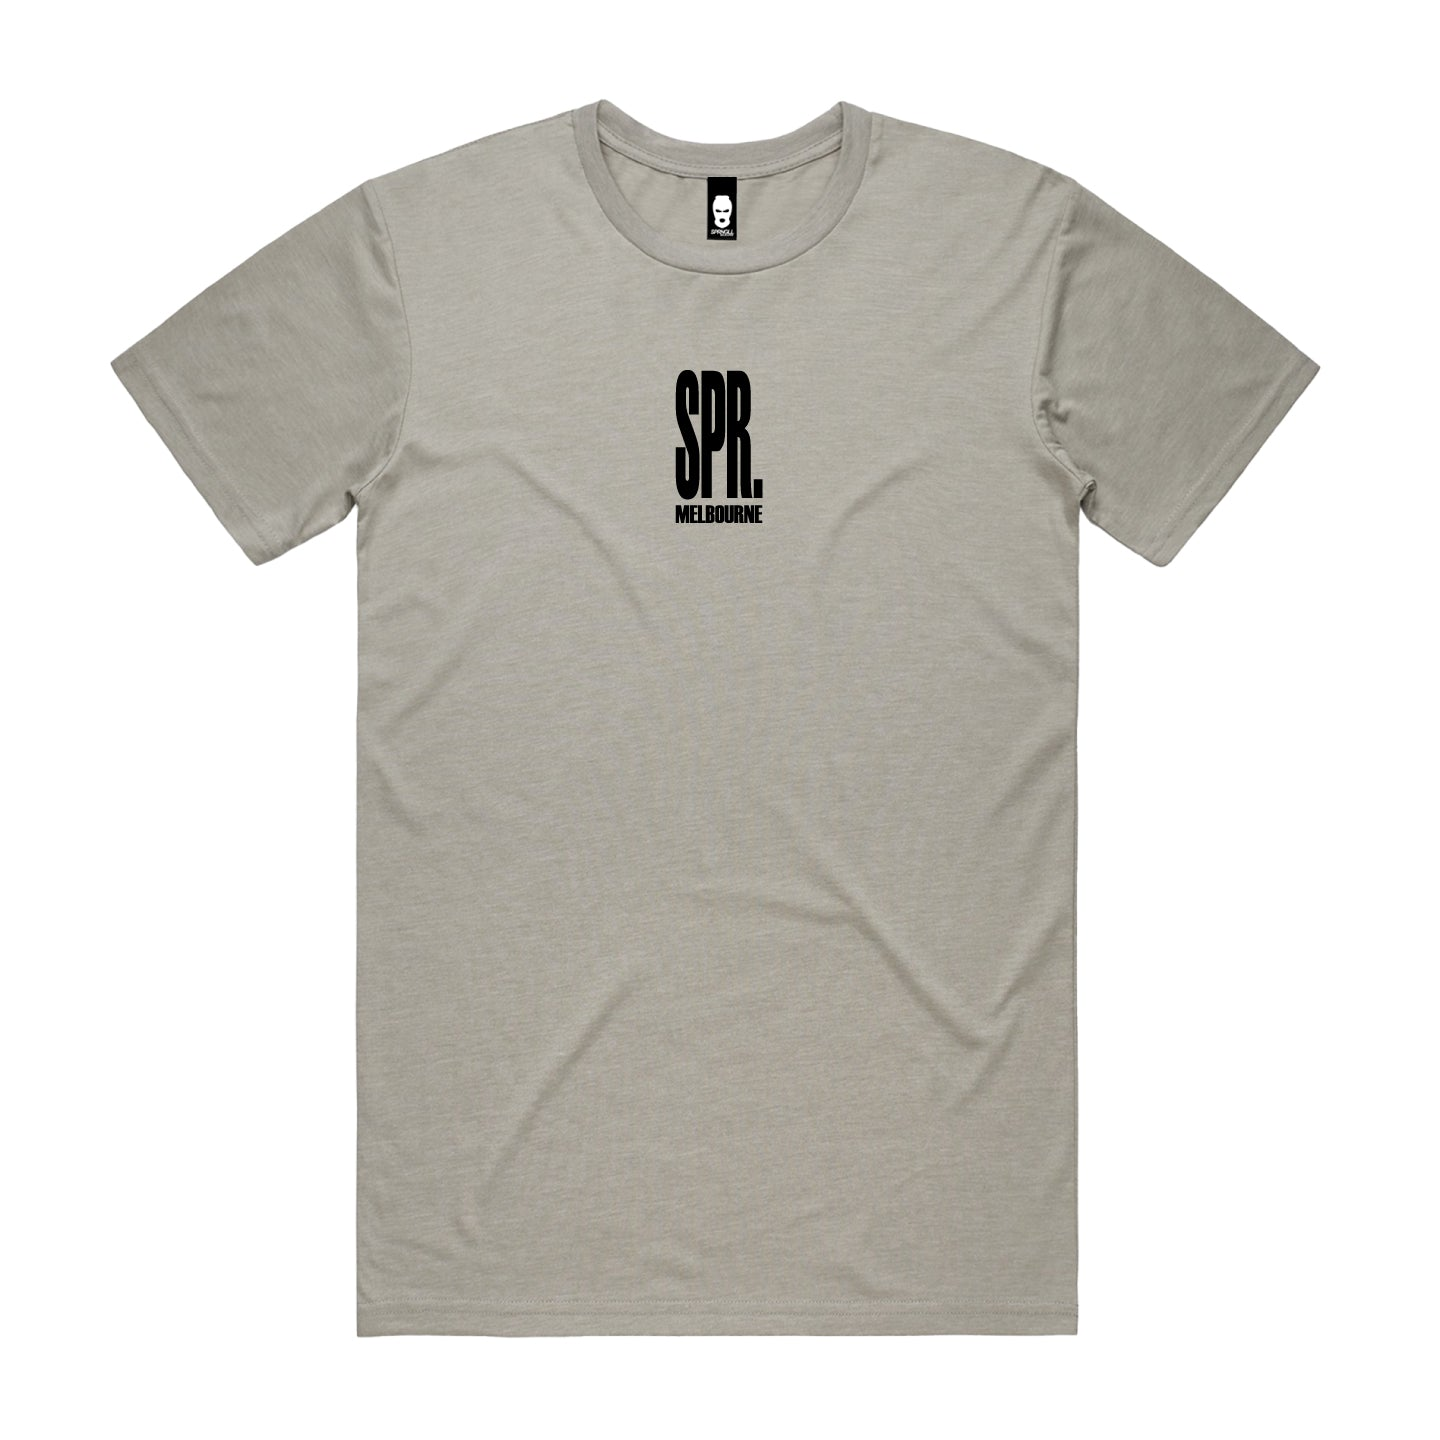 Abbr Tee Light Grey